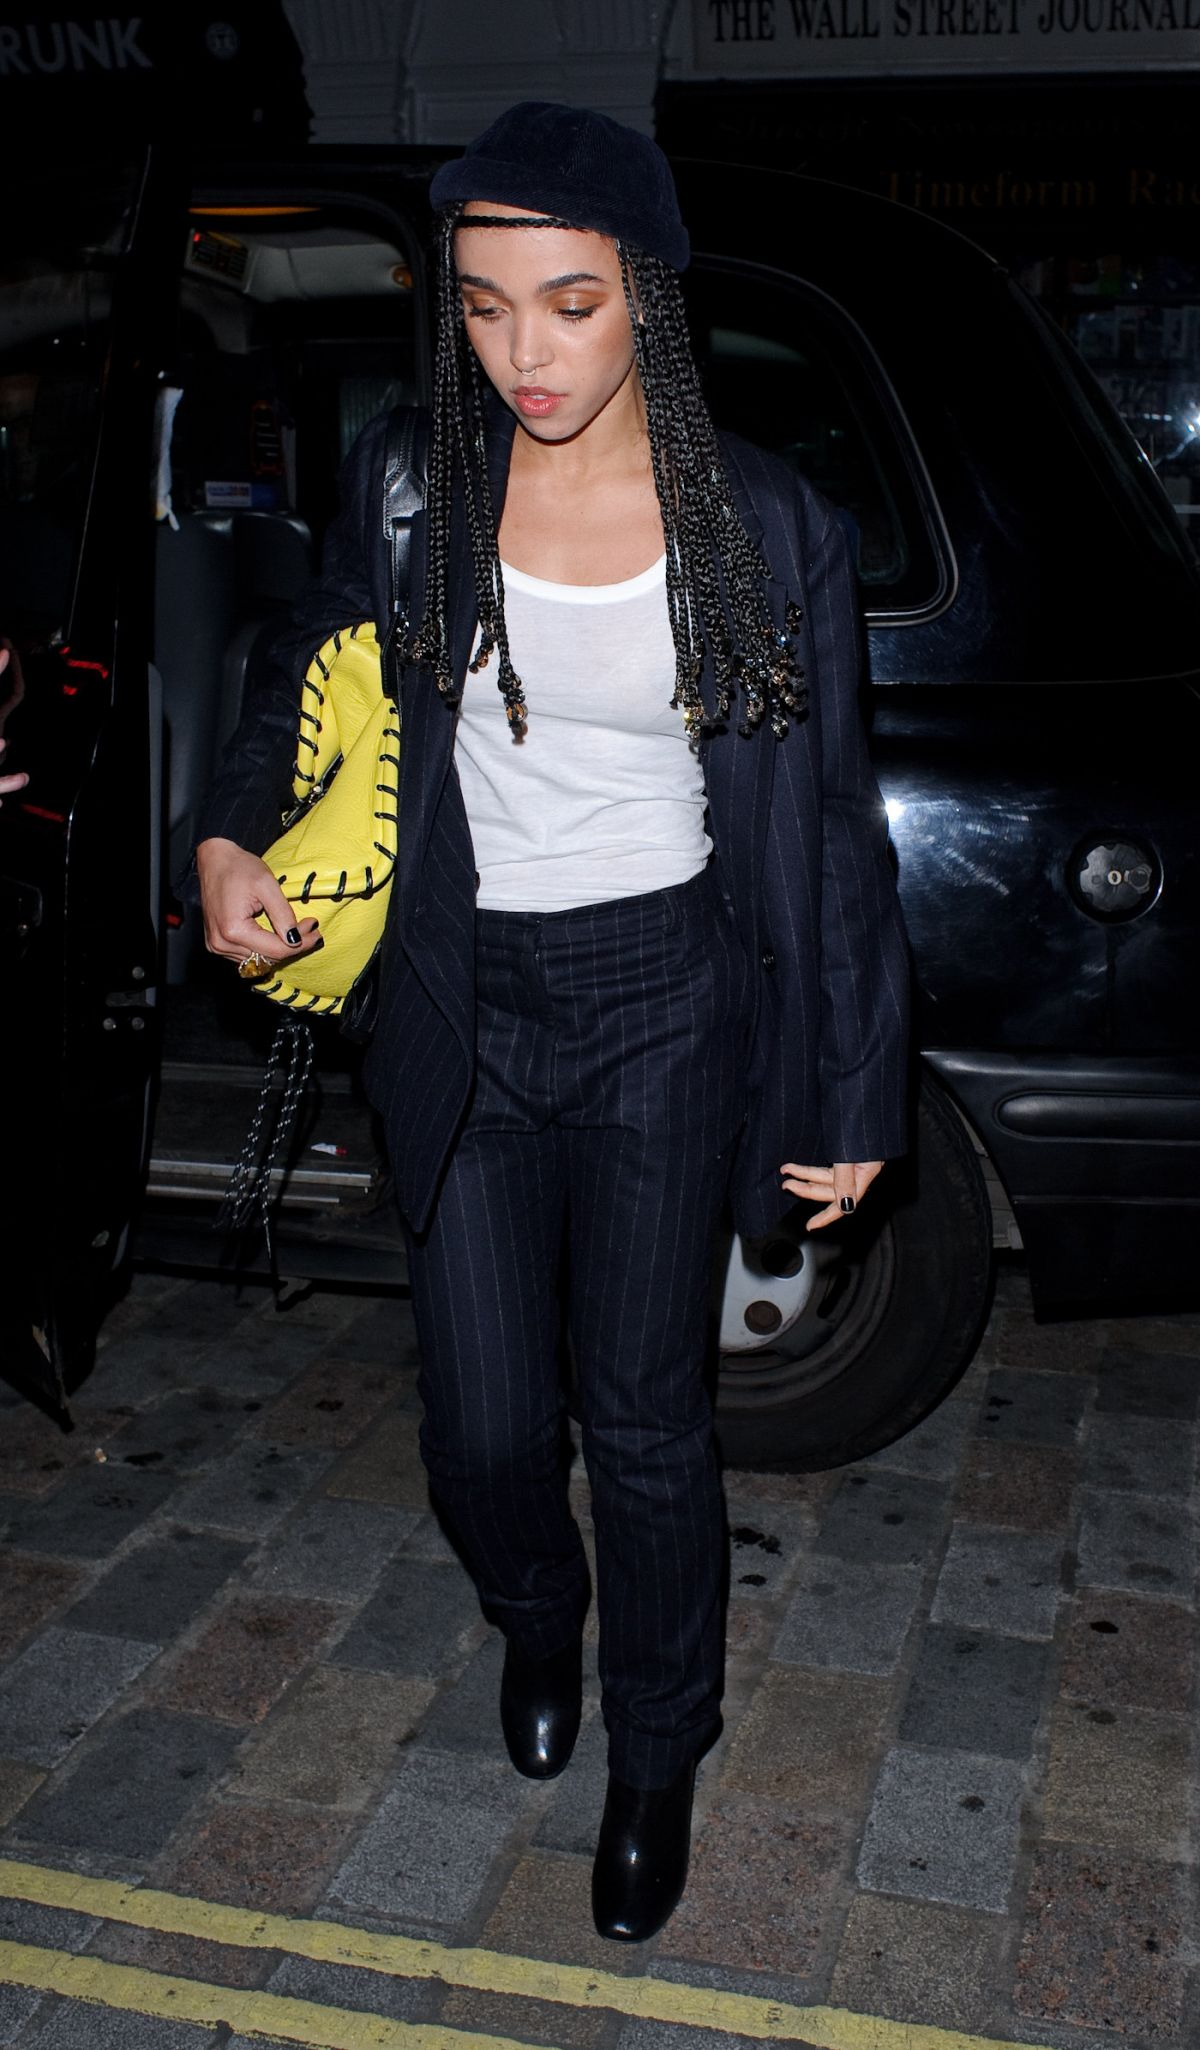 FKA TWIGS Arrives at Chiltern Firehouse in London 02/03/2016